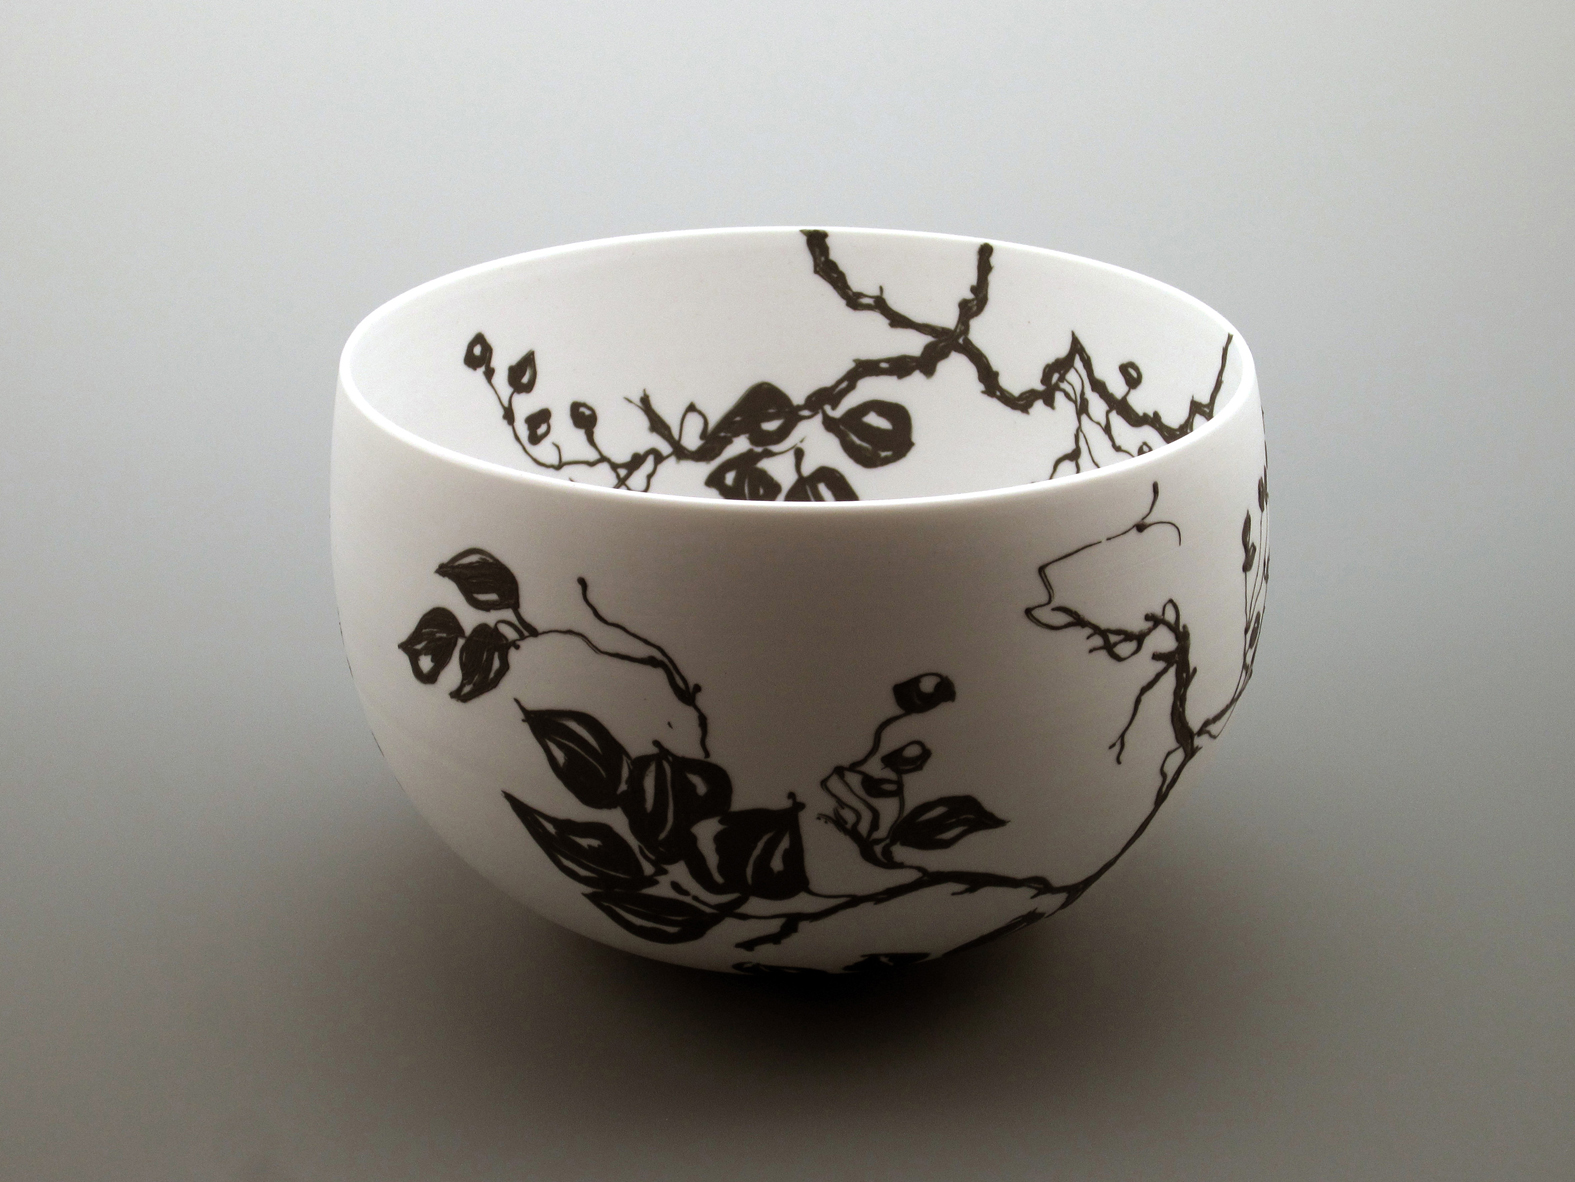 Black on white porcelain bowl